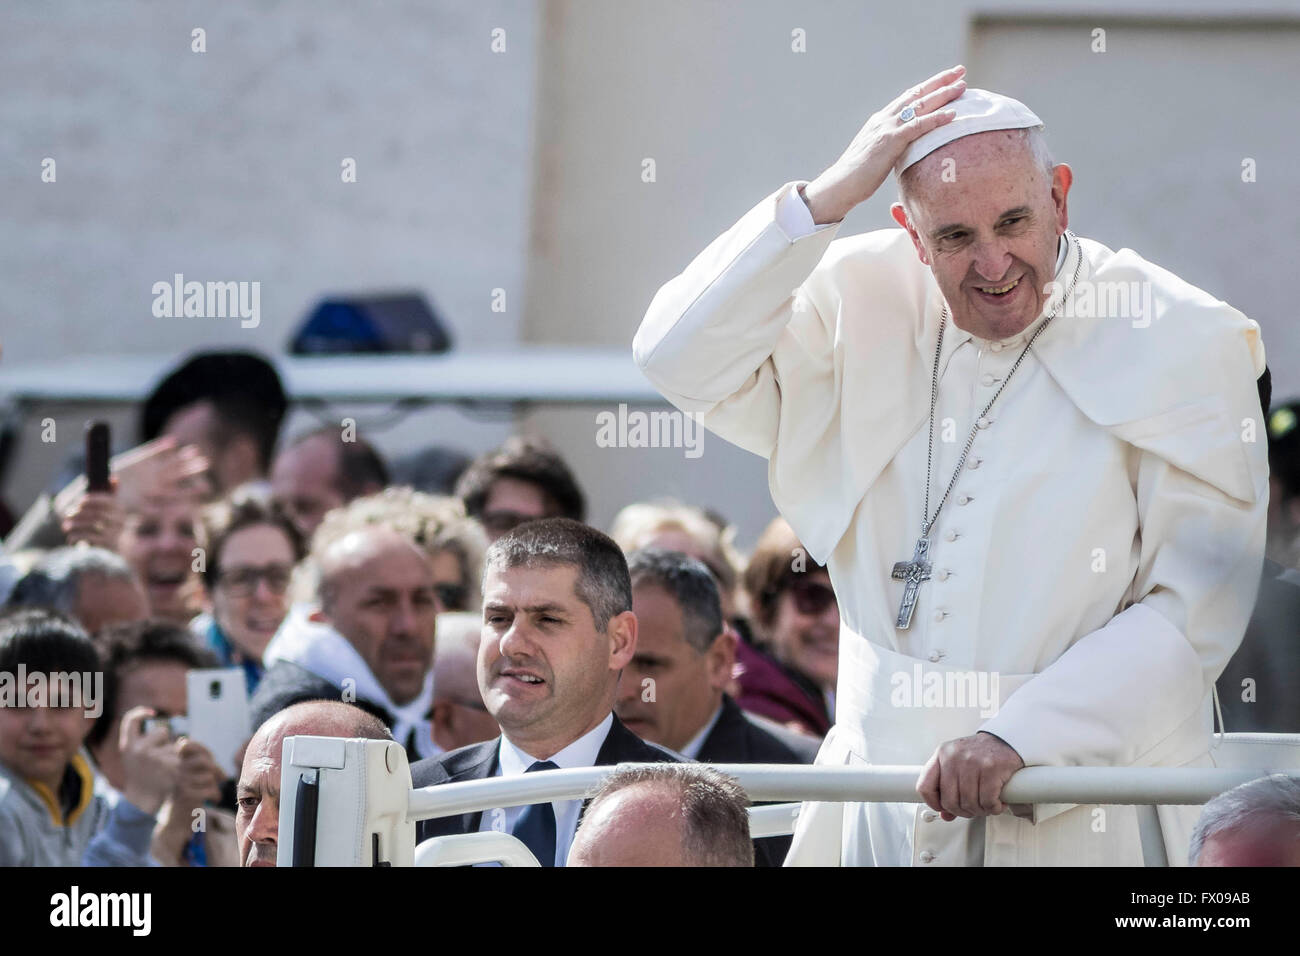 Vatican City, Vatican. 09th Apr, 2016. Pope Francis greets the faithful as he arrives to hold a special Jubilee Stock Photo